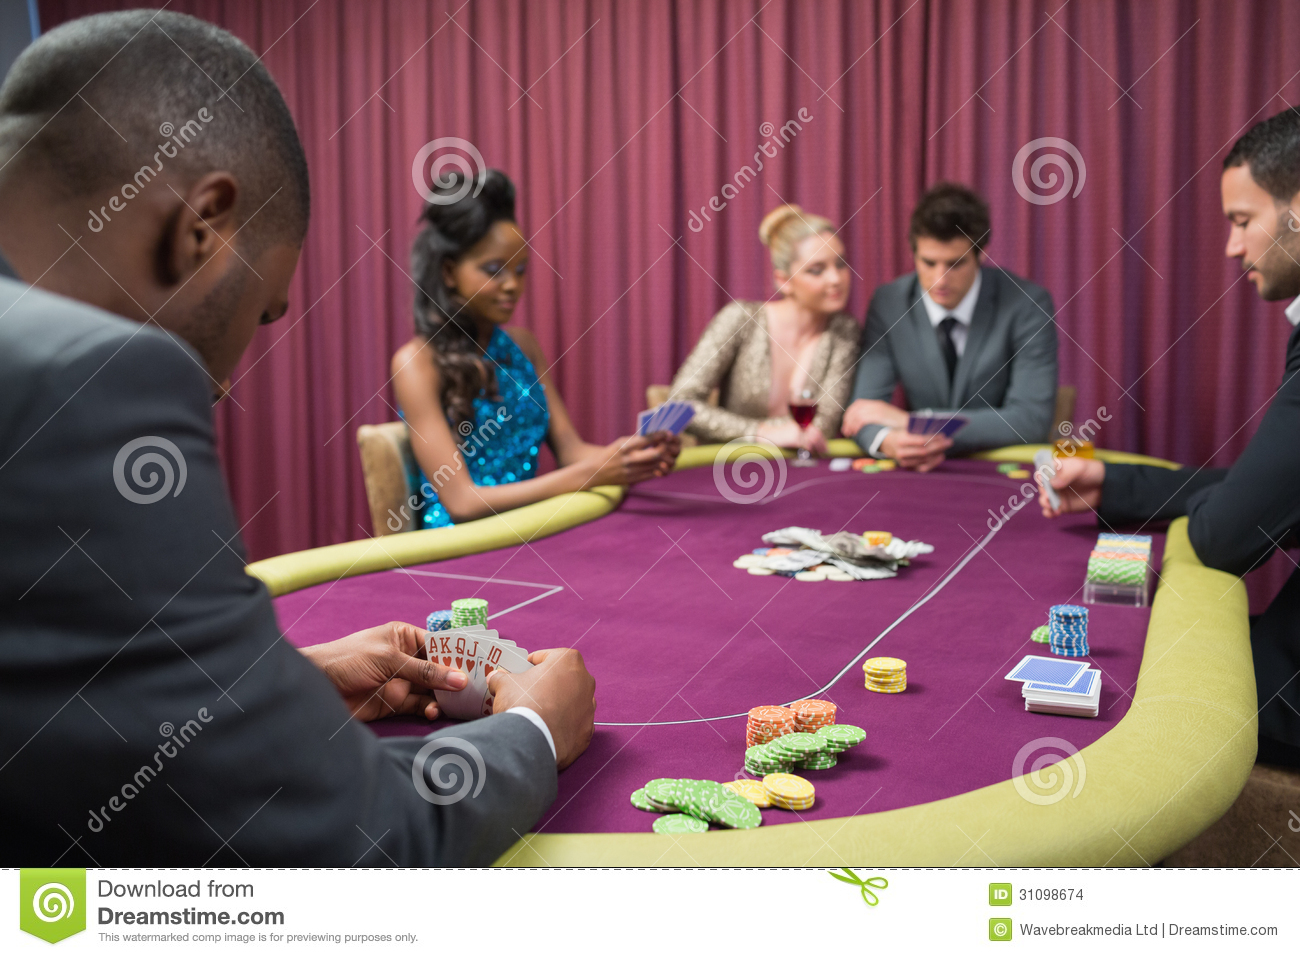 Locking person looking at their cards in poker Capital Empires play free slots